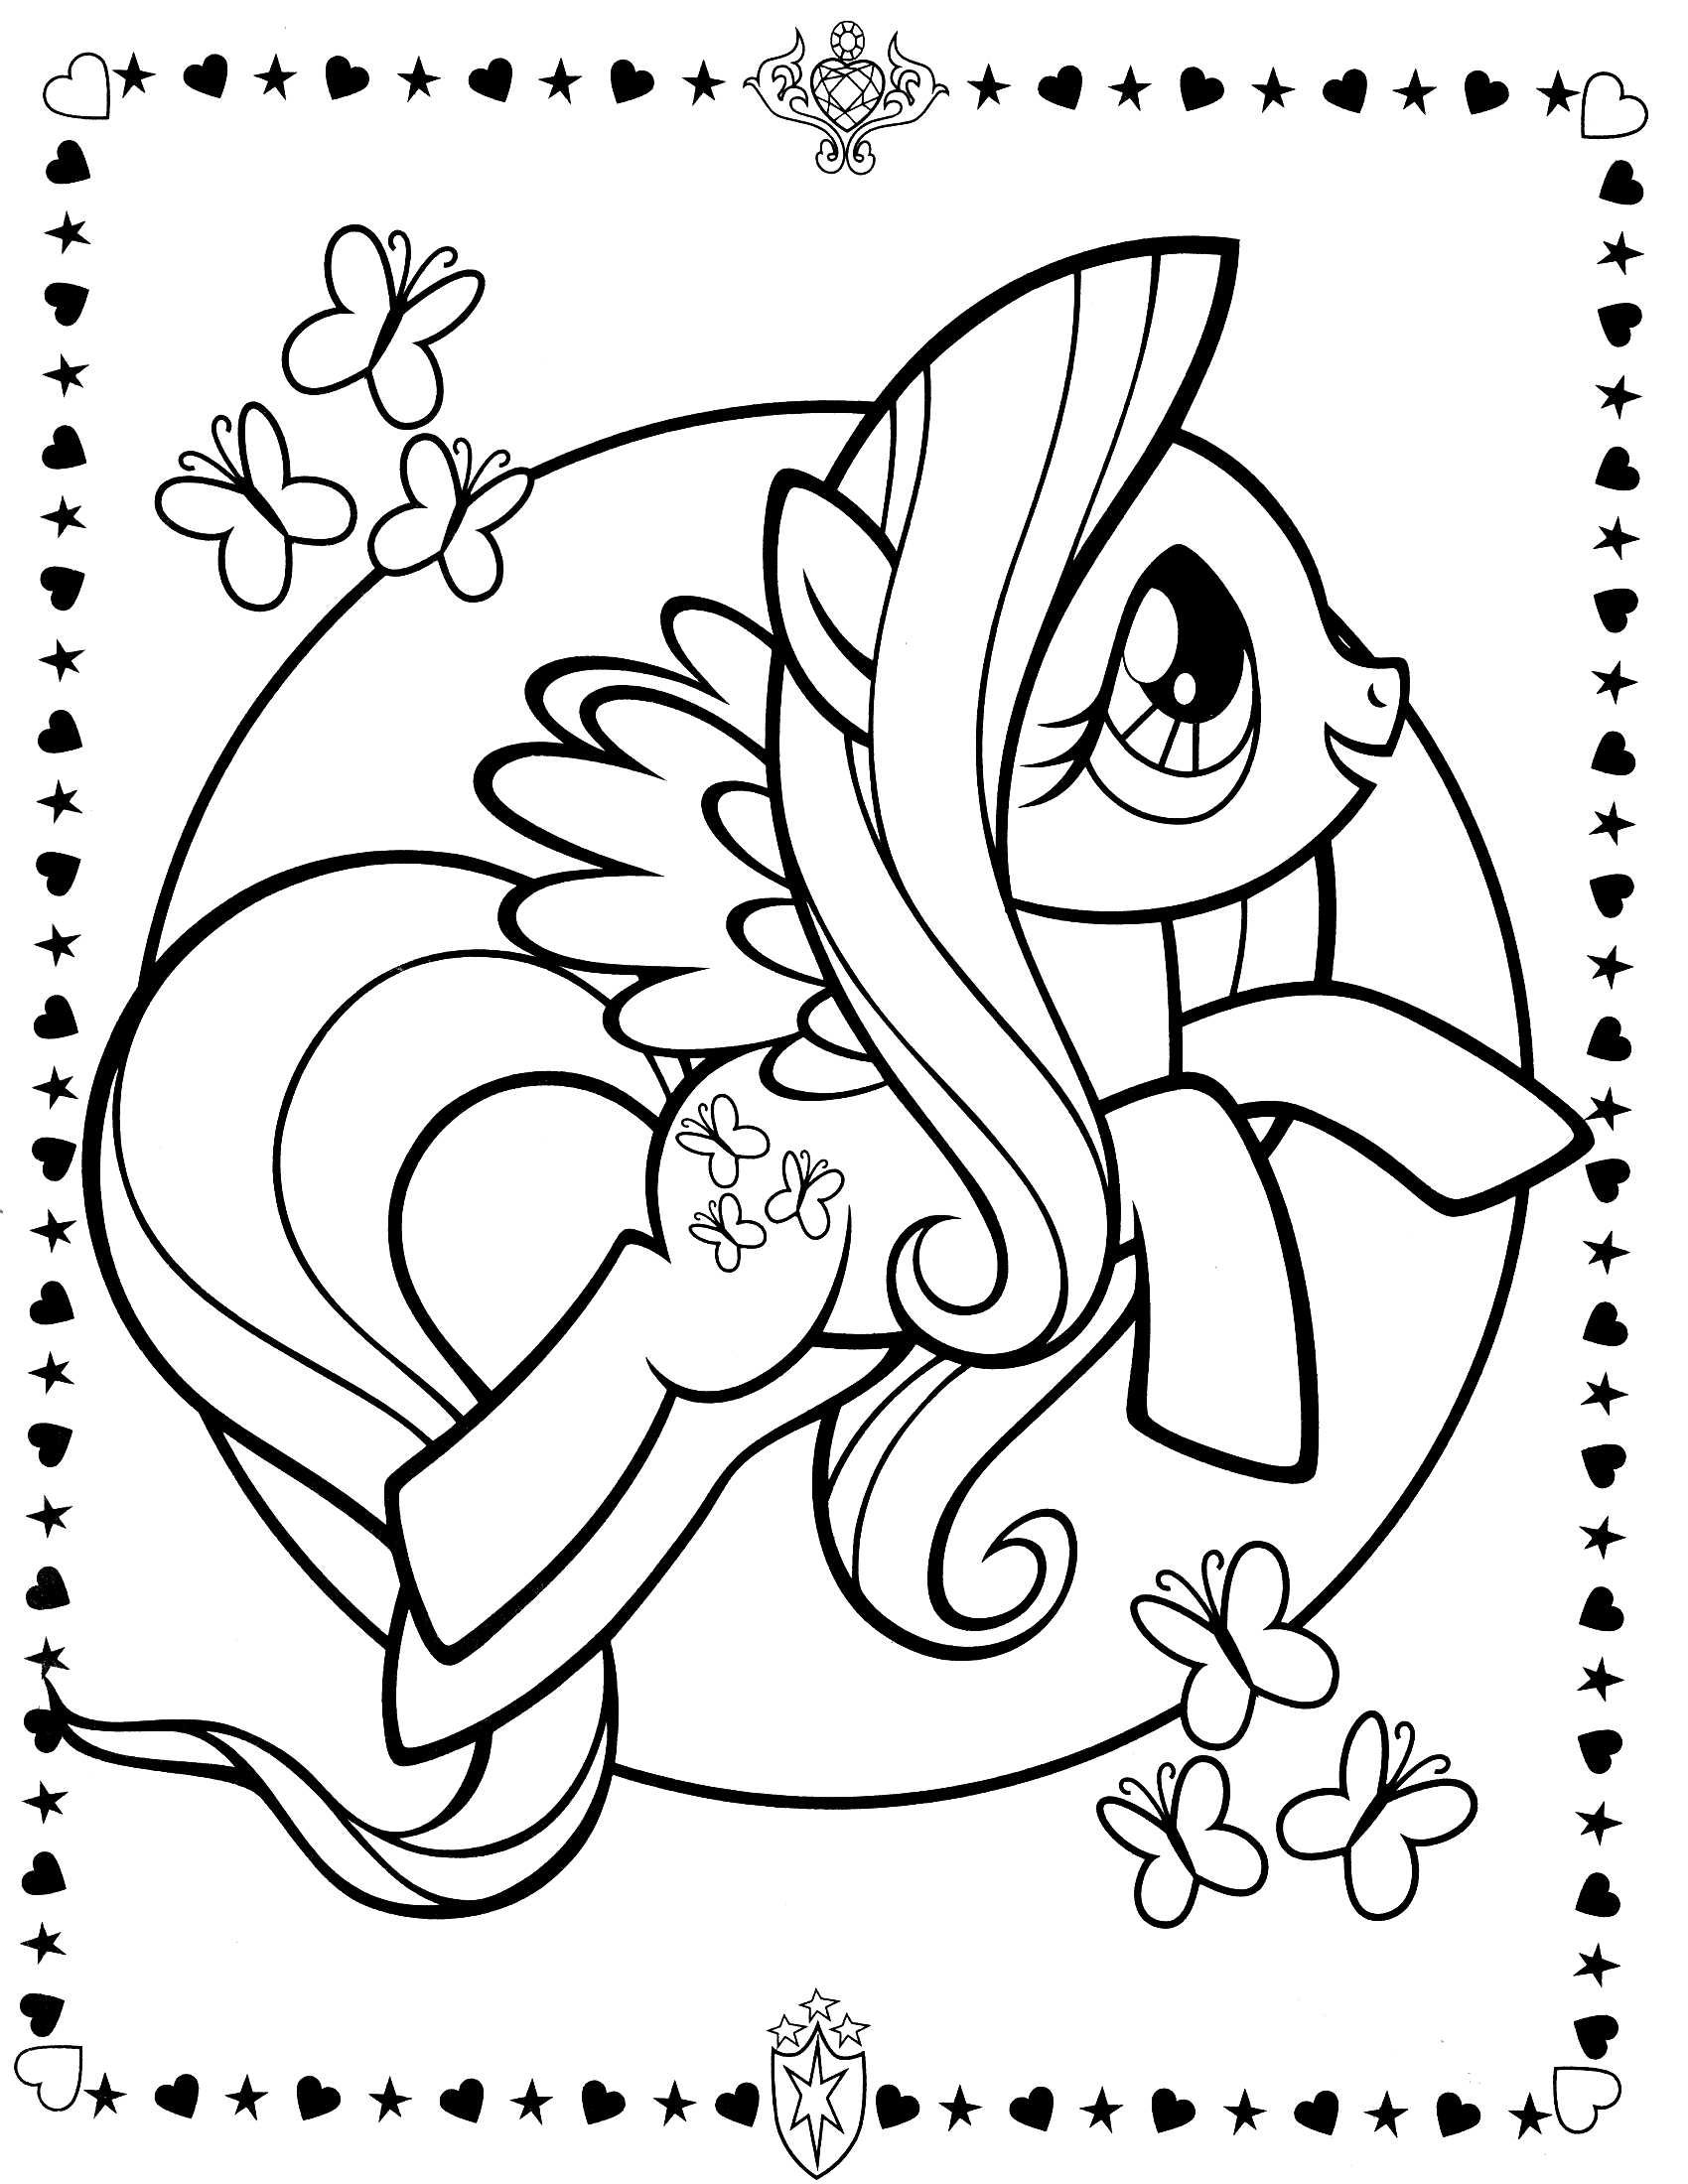 my little pony friendship is magic colouring pages my little pony colouring sheets fluttershy my little is little pony pages friendship colouring my magic